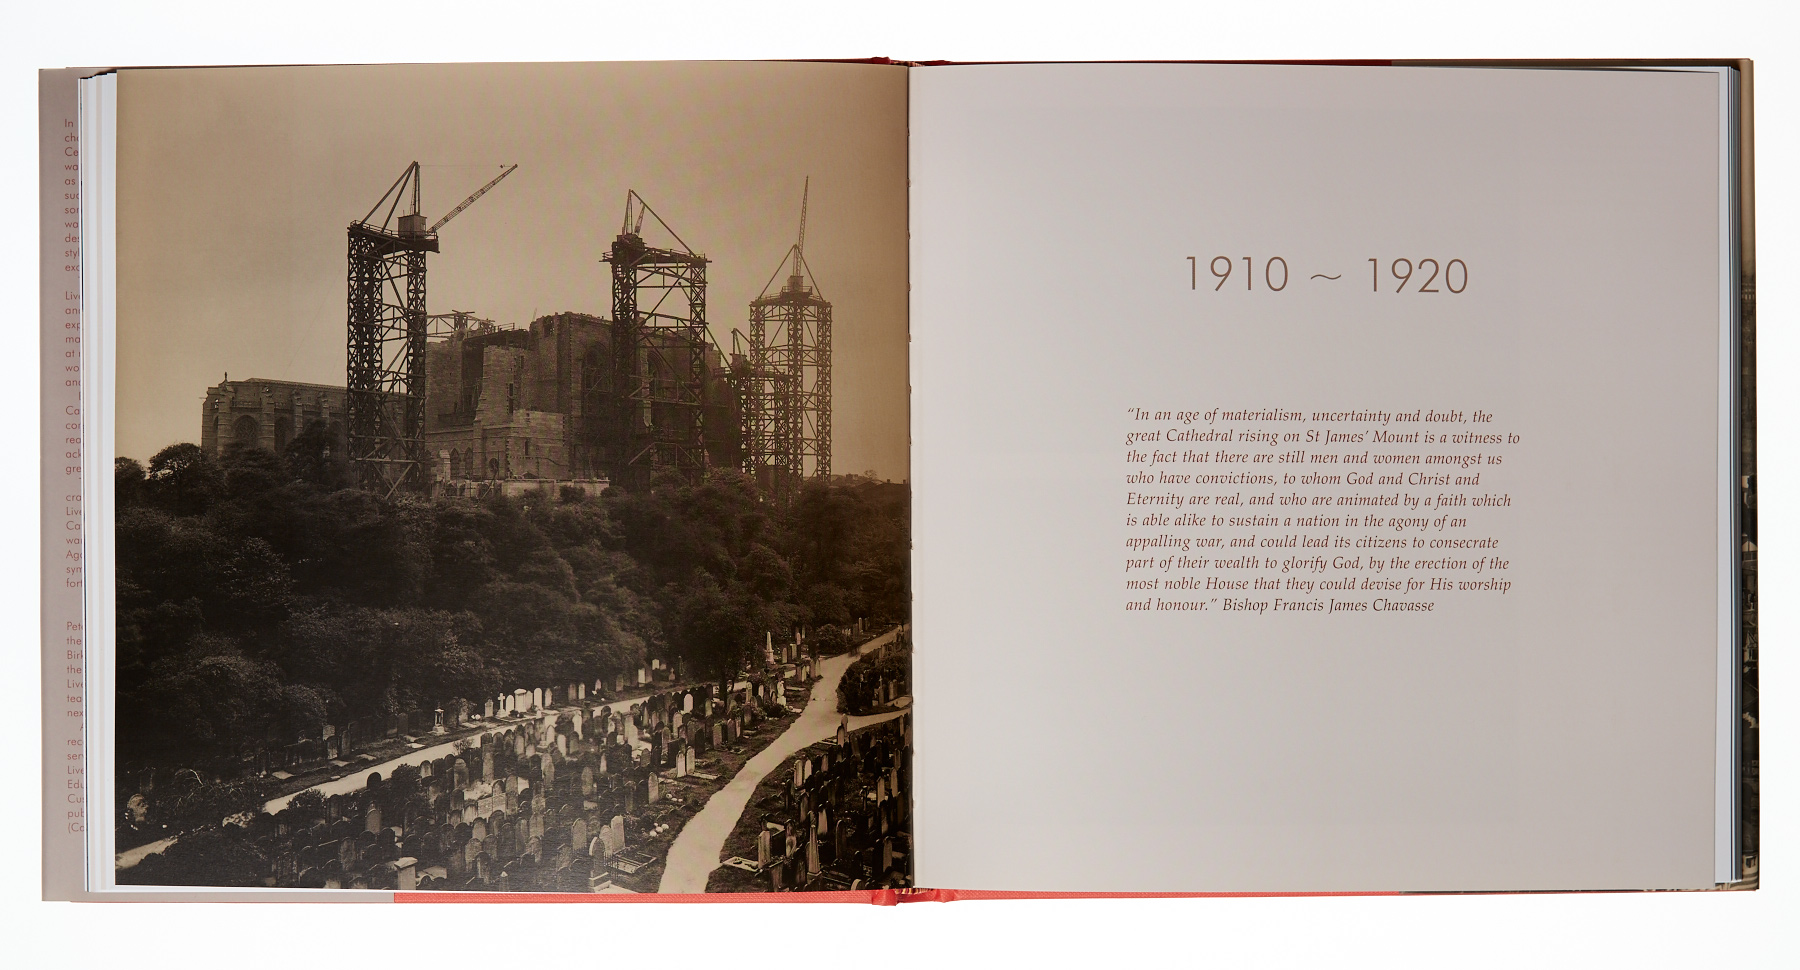 liverpool-cathedral-book-page-46.jpg